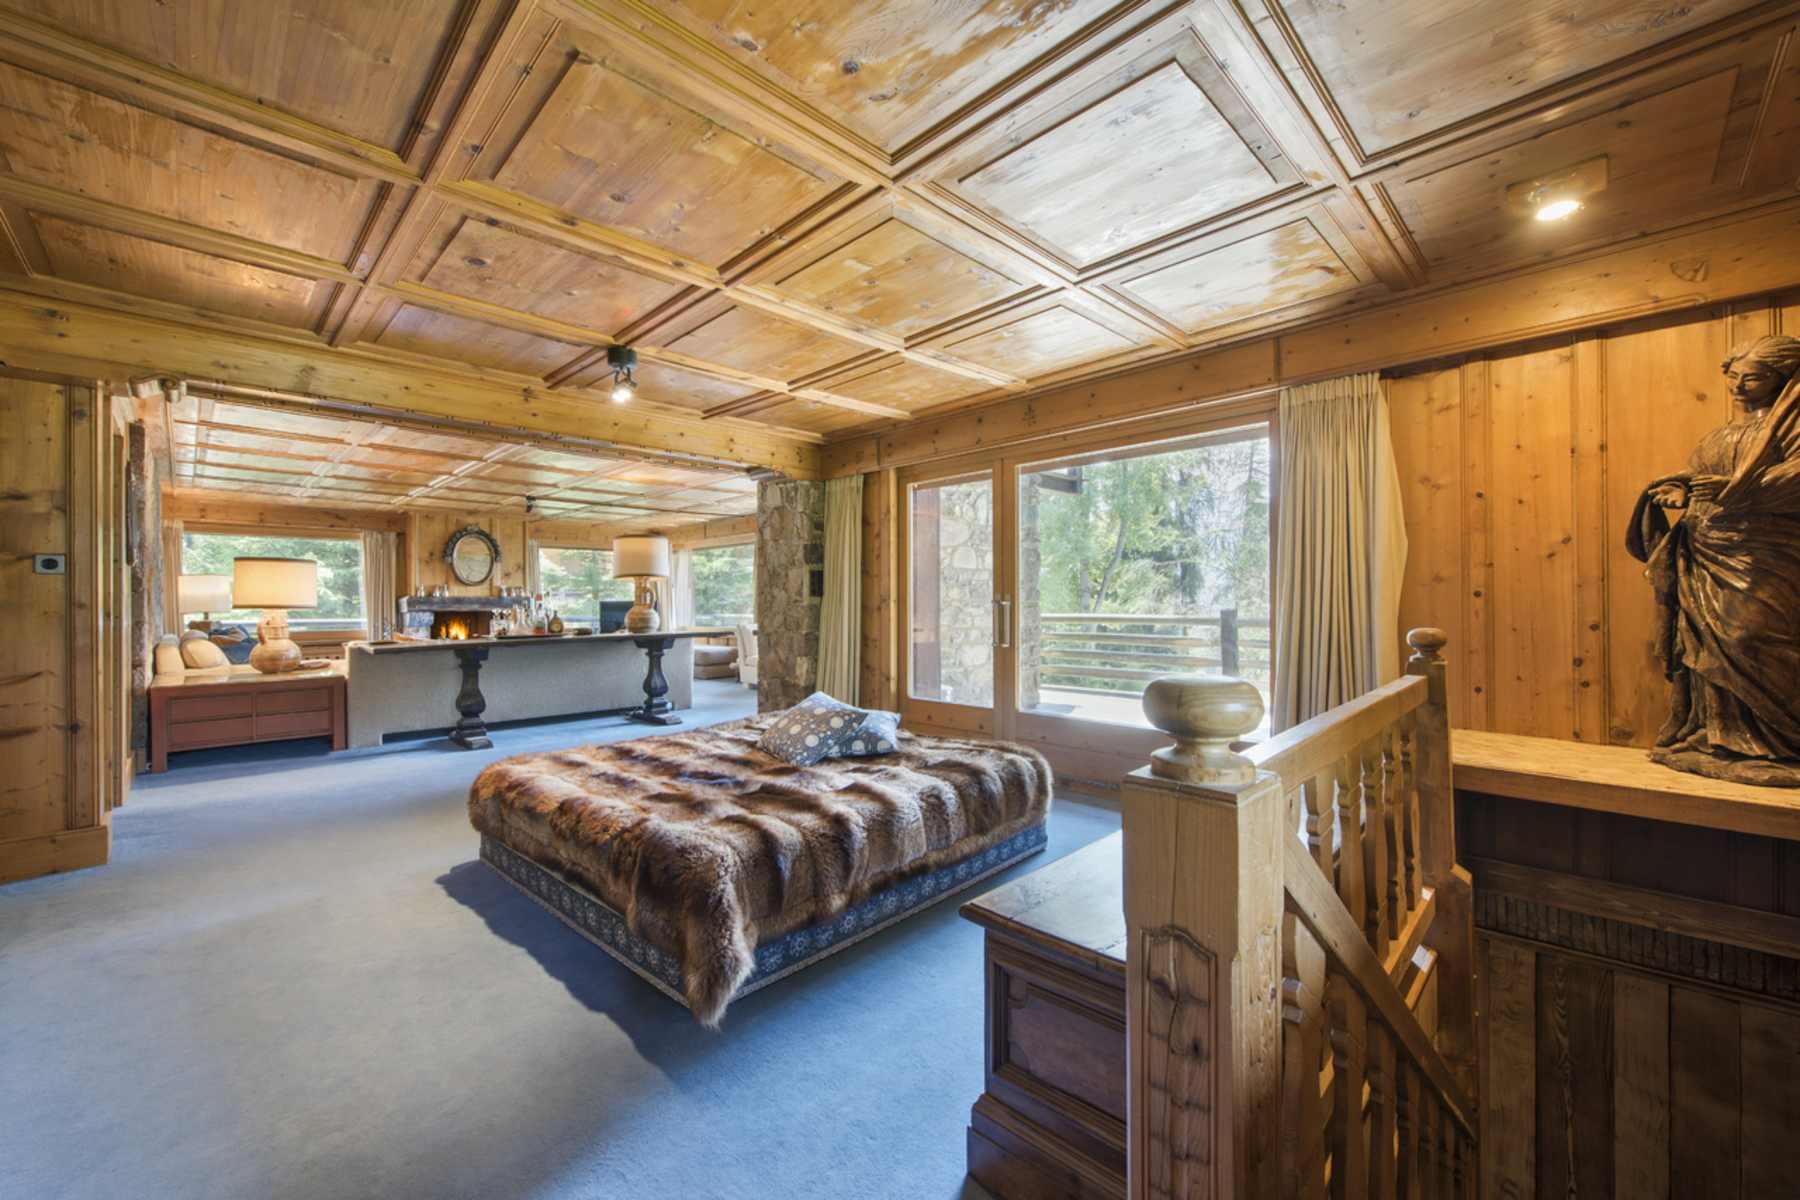 Additional photo for property listing at Chalet Peter Pan, Place Centrale  Verbier, Valais 1936 Switzerland